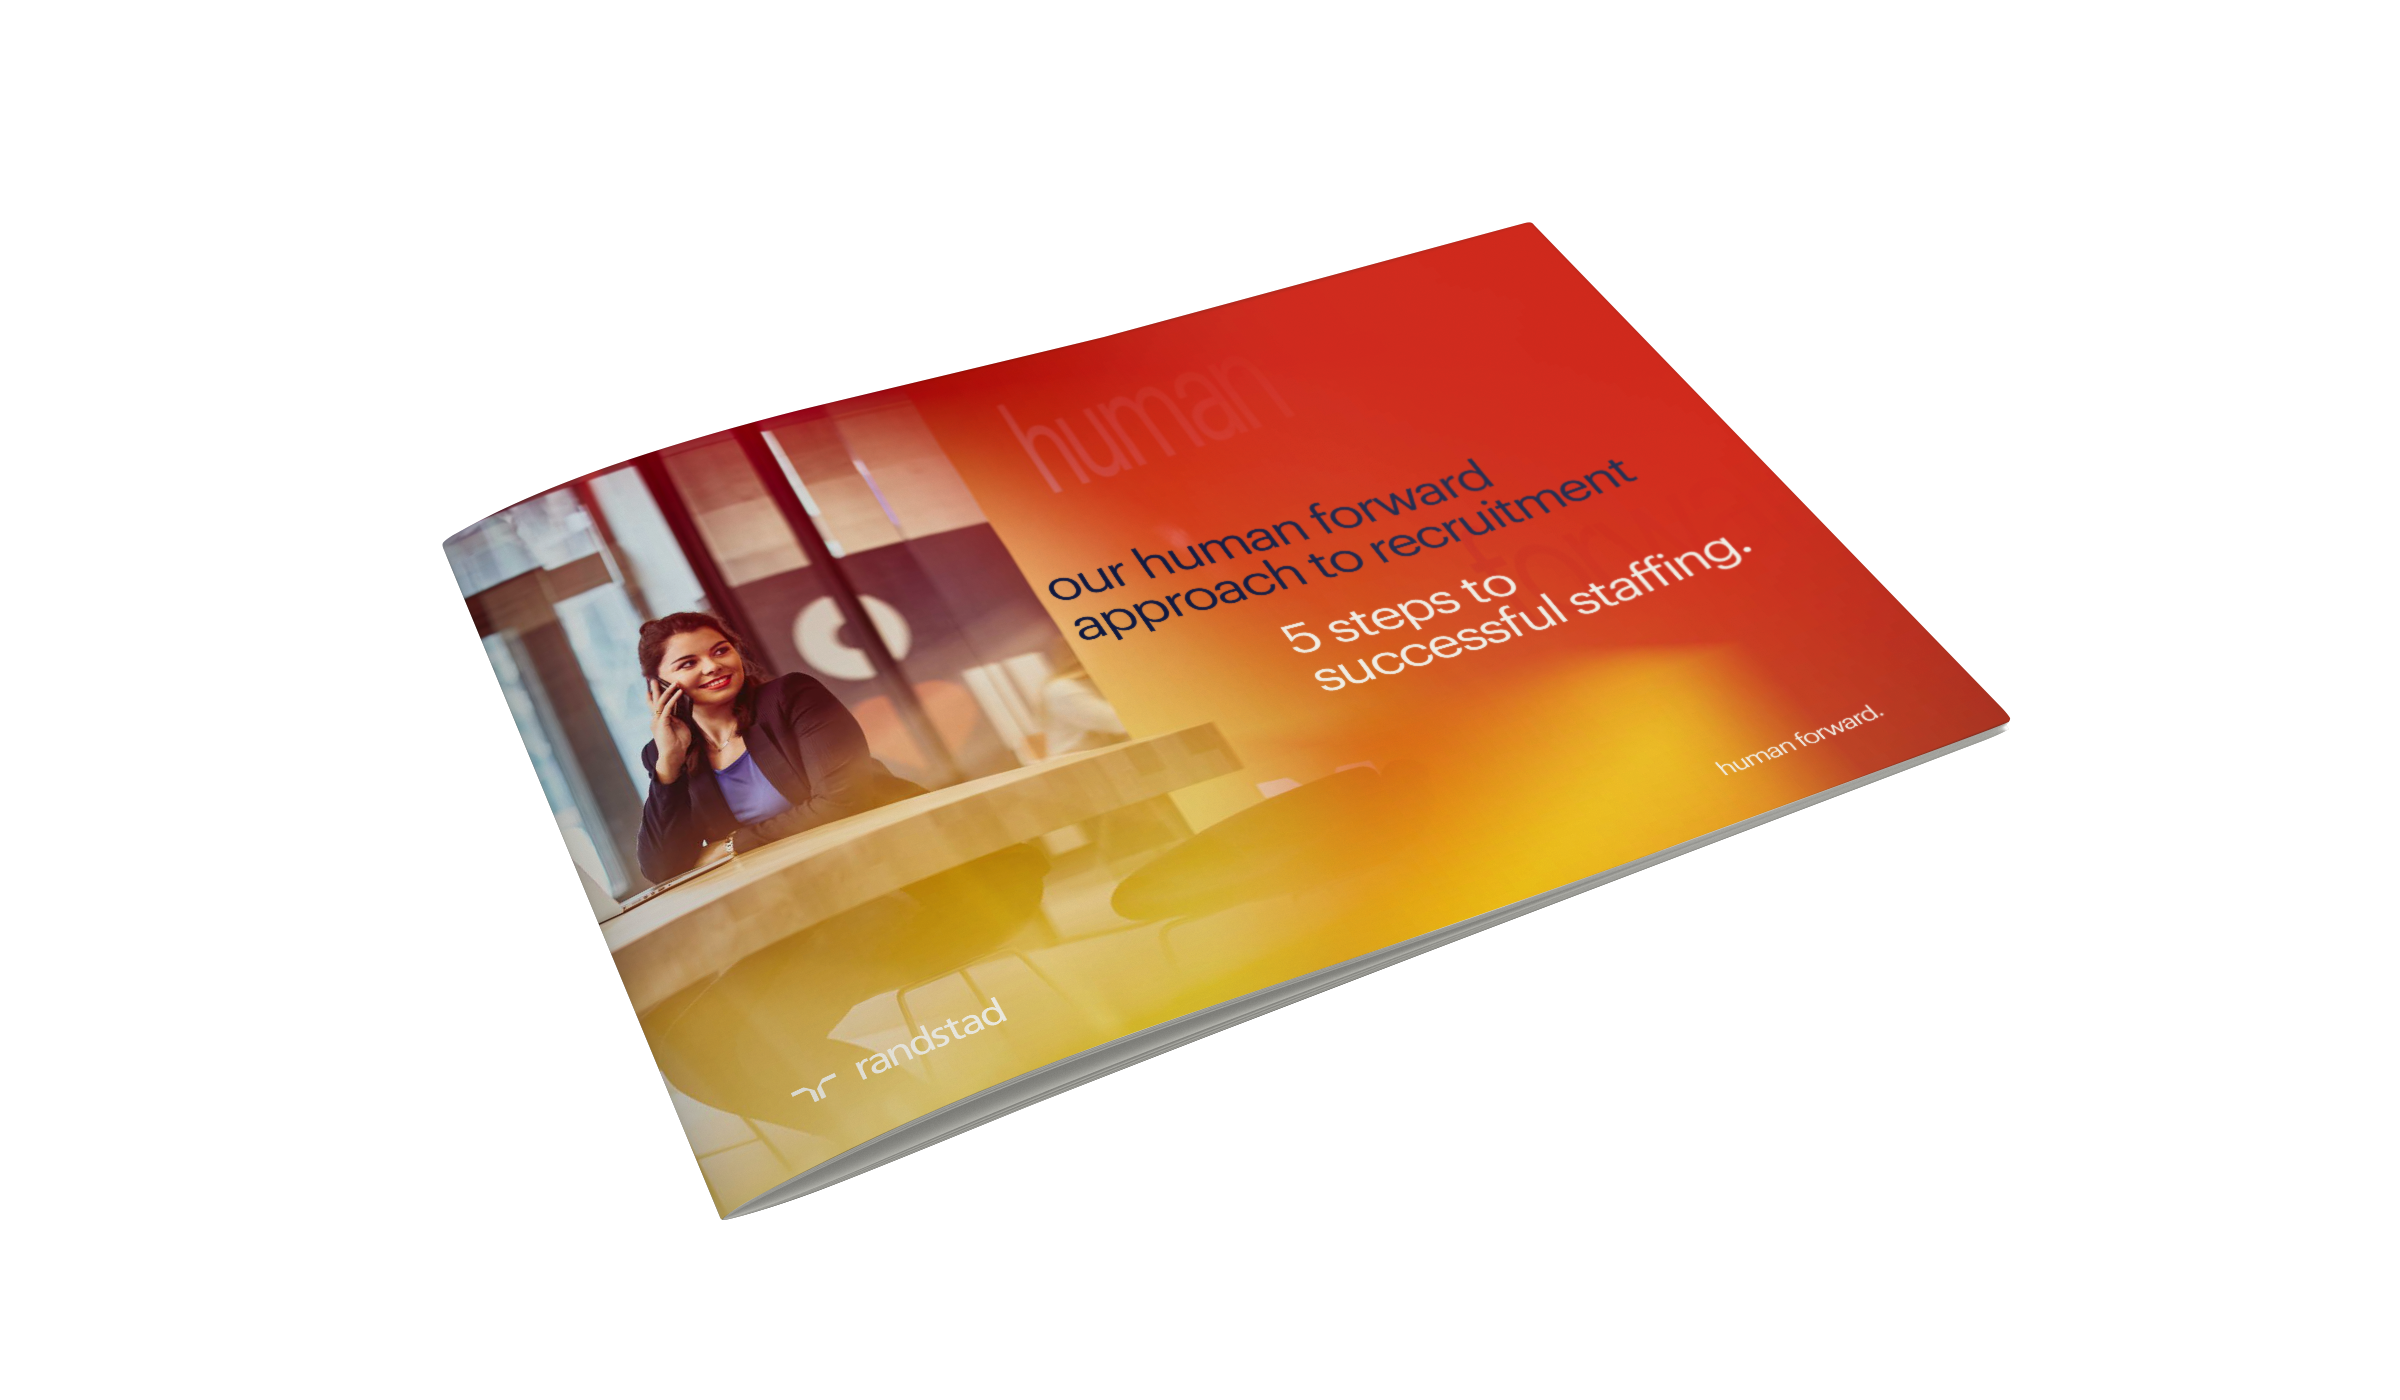 RSH-2681-Mockup-Whitepaper-the-Randstad-approach-to-recruitment---5-steps-to-successful-staffing-201208